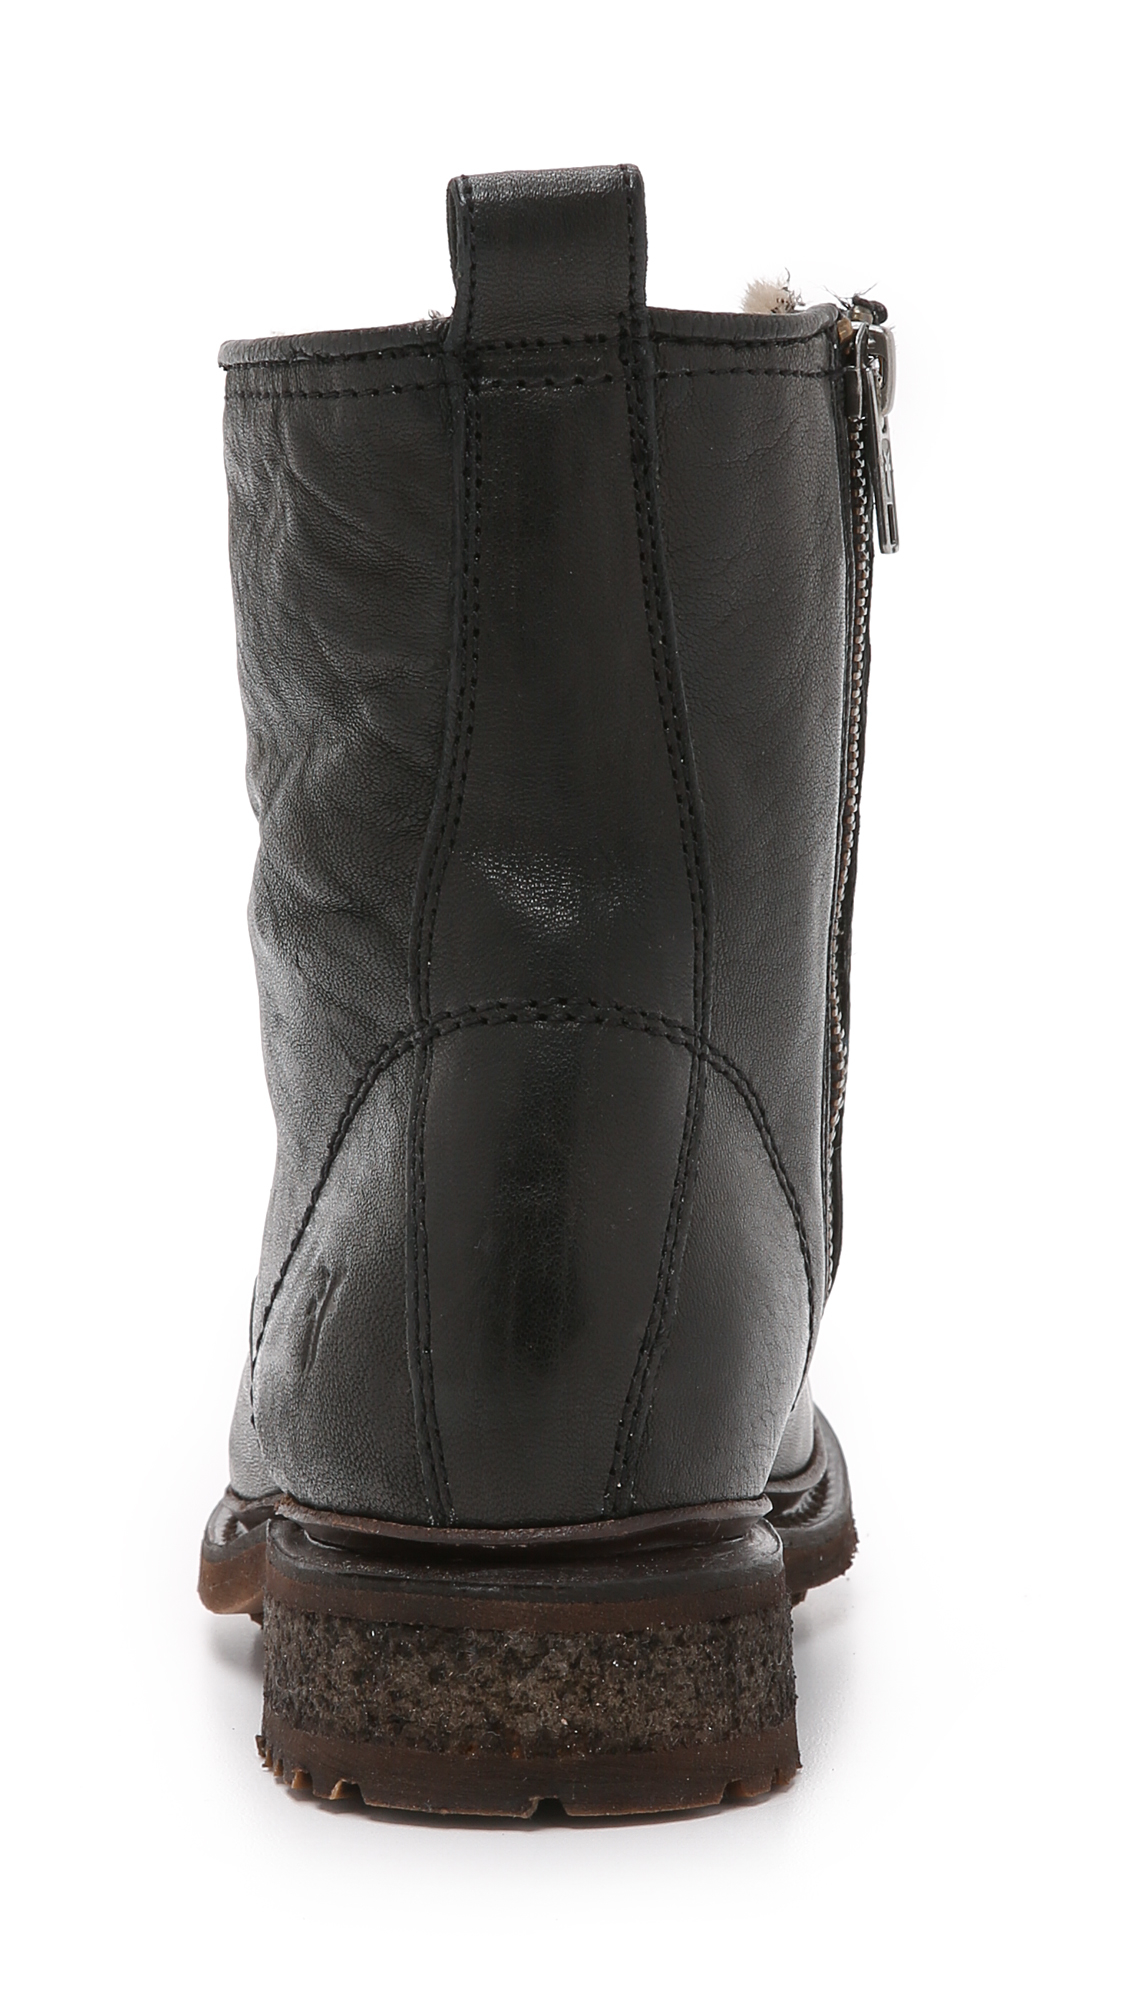 Frye Leather Valerie Lace Up Booties in Black